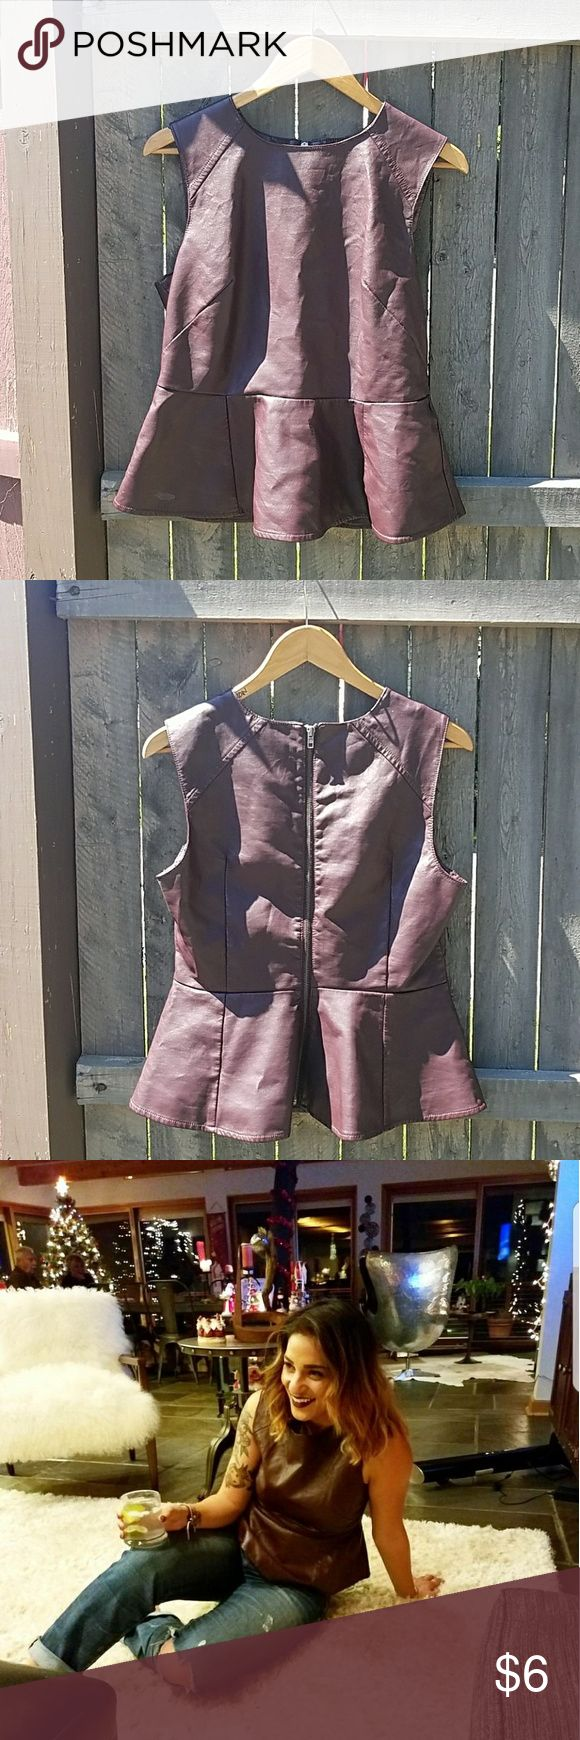 Faux Leather Peplum Top Faux leather peplum top in burgundy. Featuring full exposed zipper down the back and darts for a perfect fit. Wear alone or layer over your favorite tee! mandee Tops